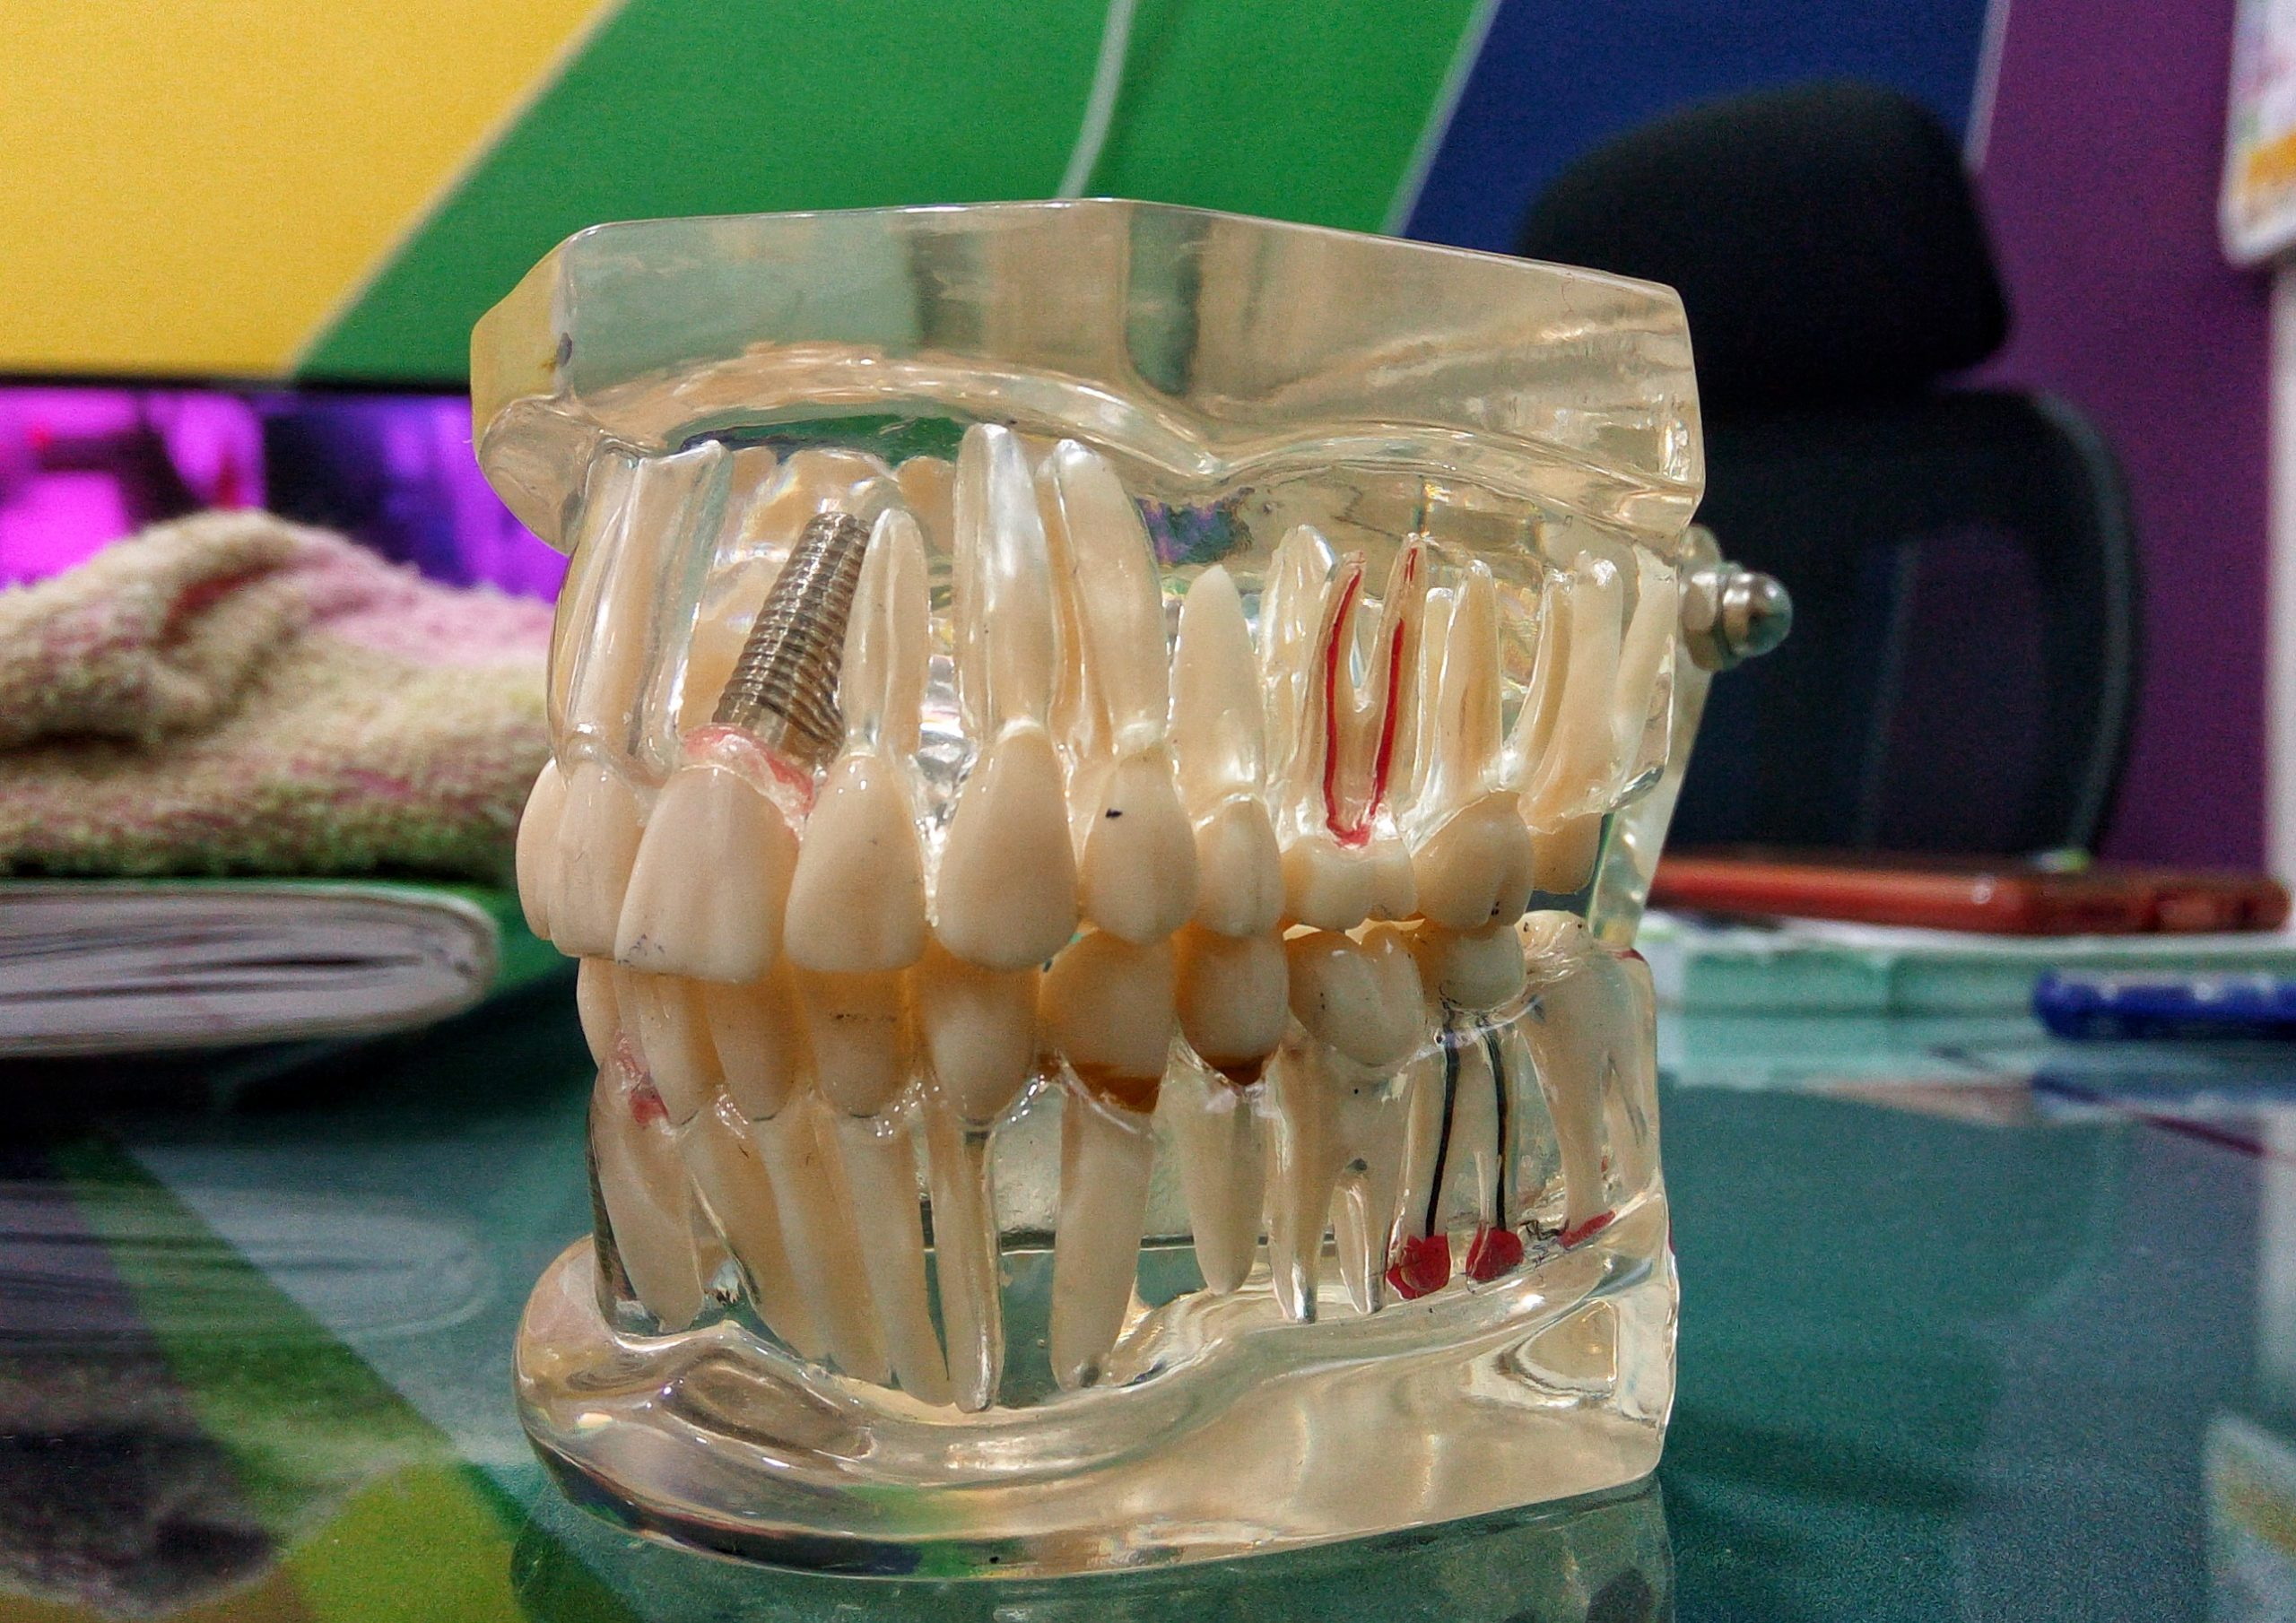 Dummy Jaw at a dental clinic